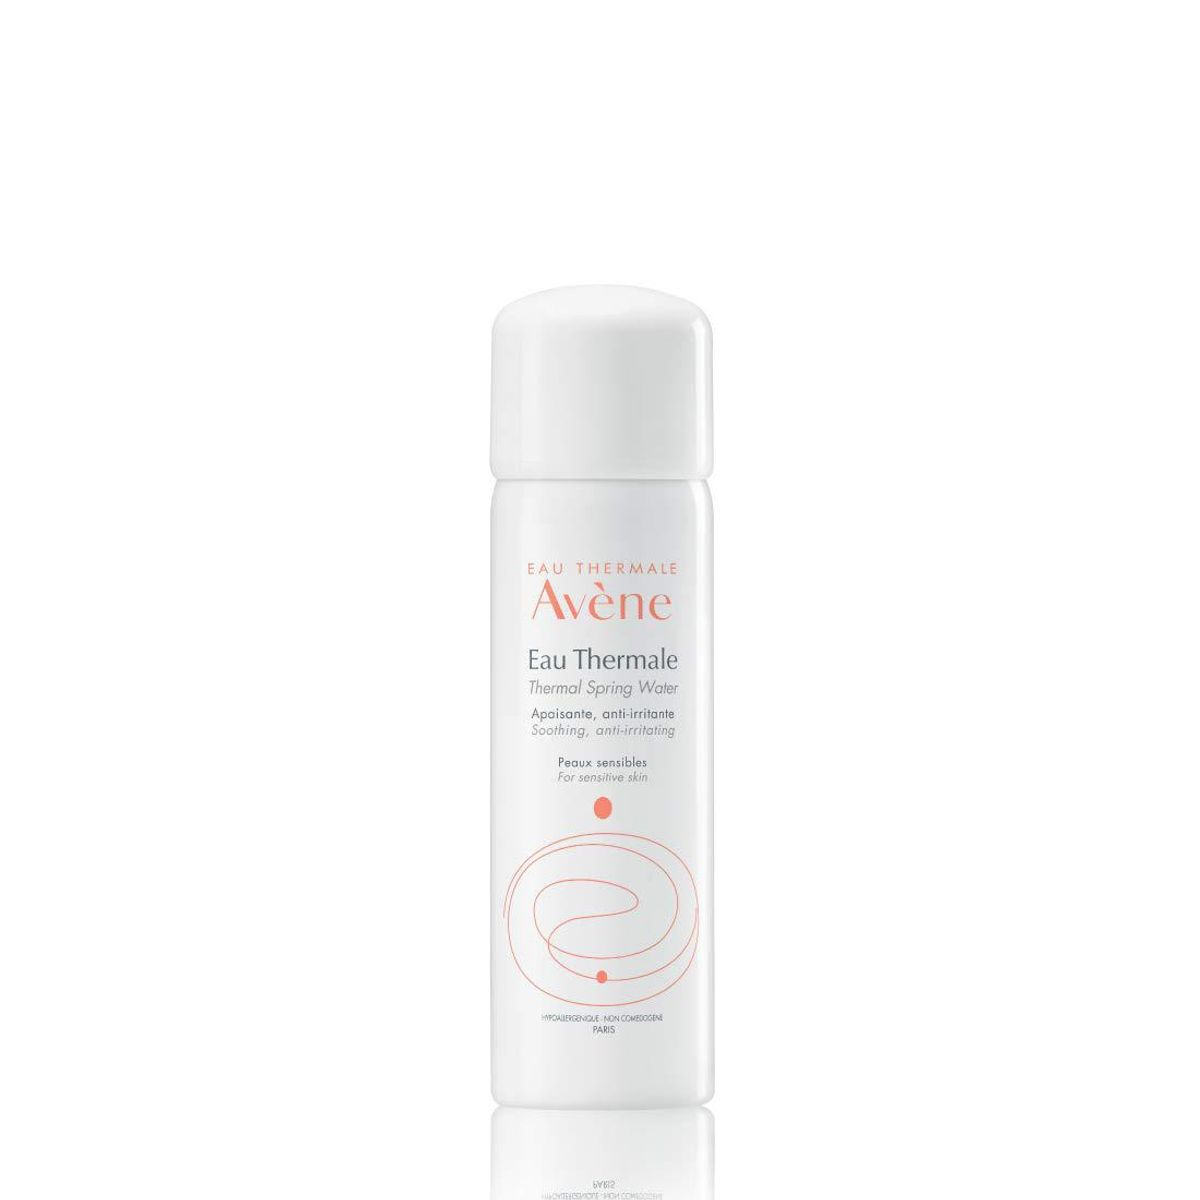 eau thermale avene thermal spring water soothing calming facial mist spray for sensitive skin